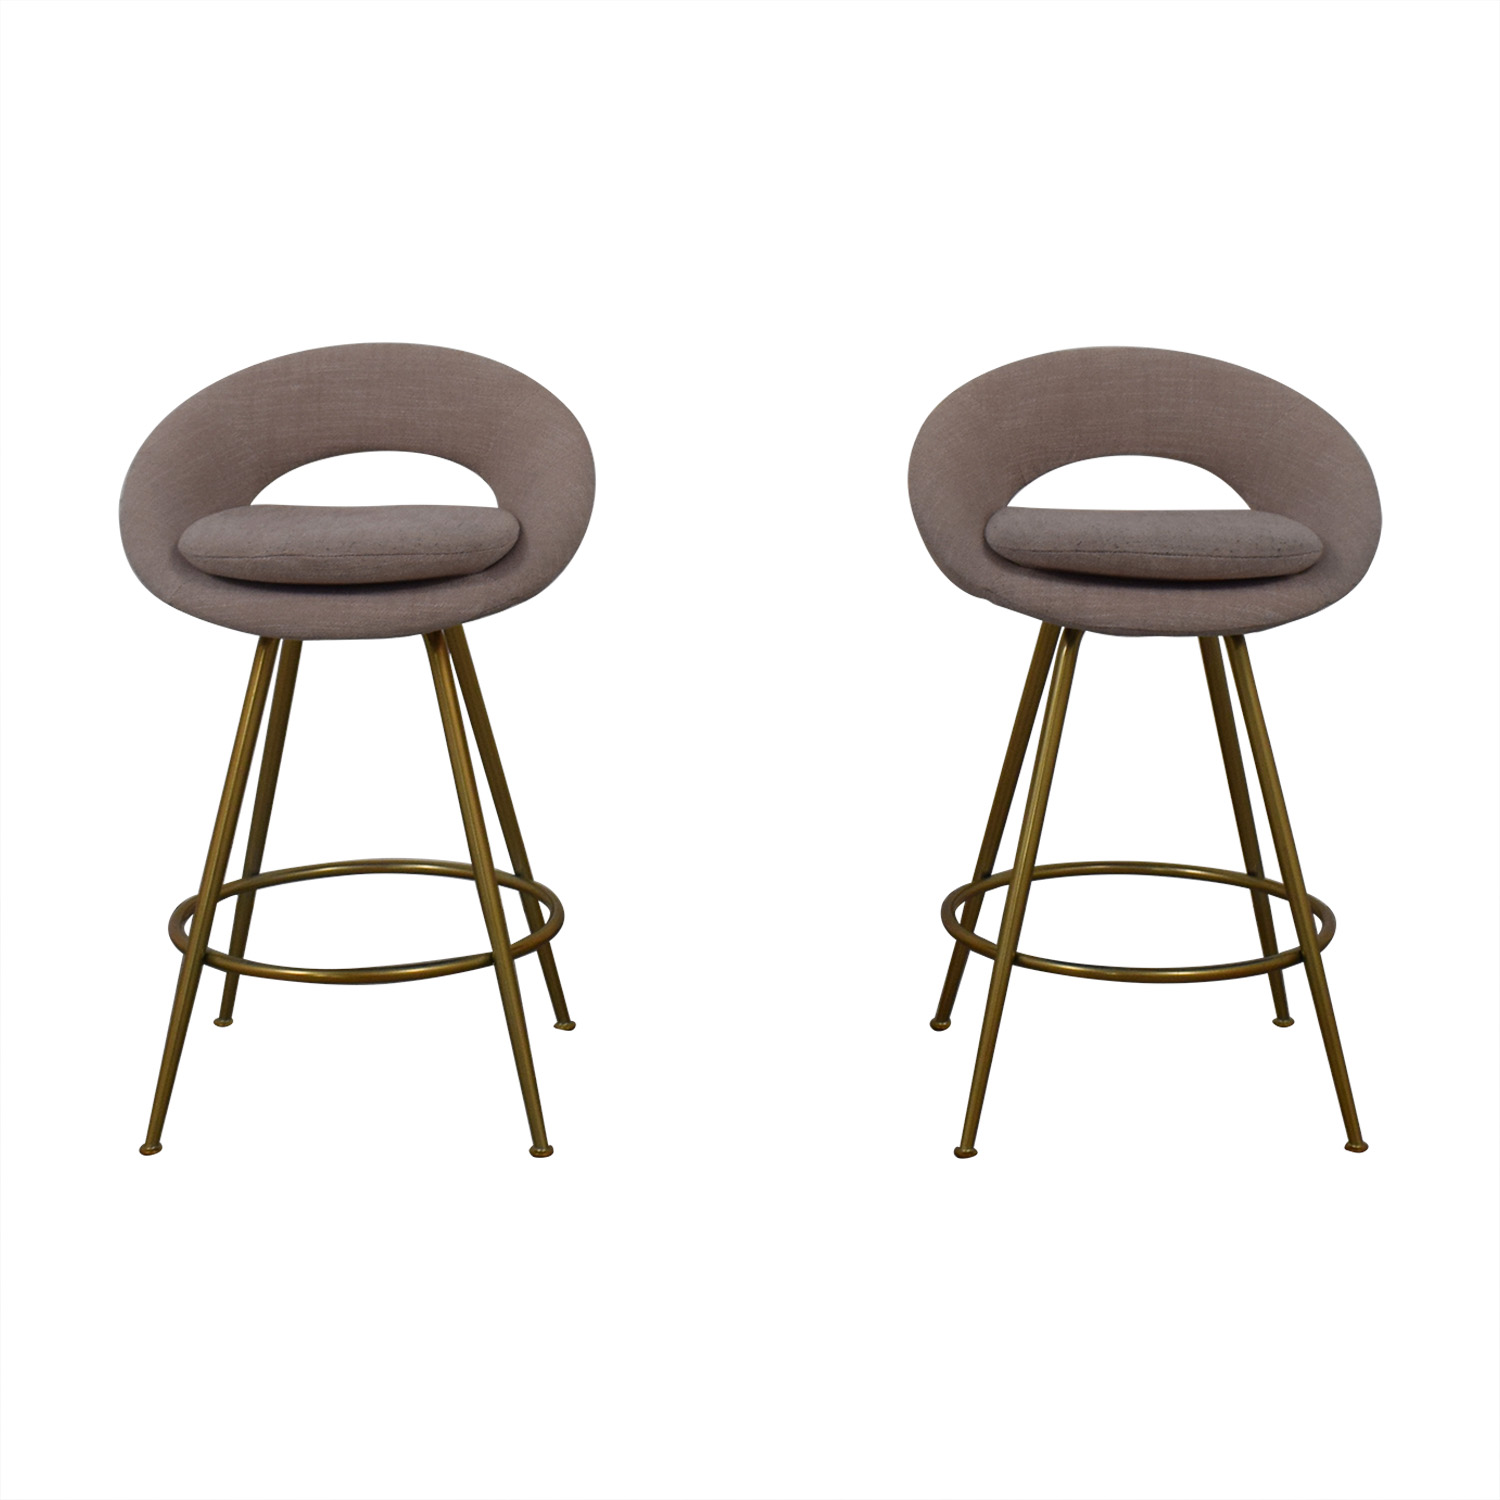 West Elm West Elm Orb Upholstered Bar Stools coupon